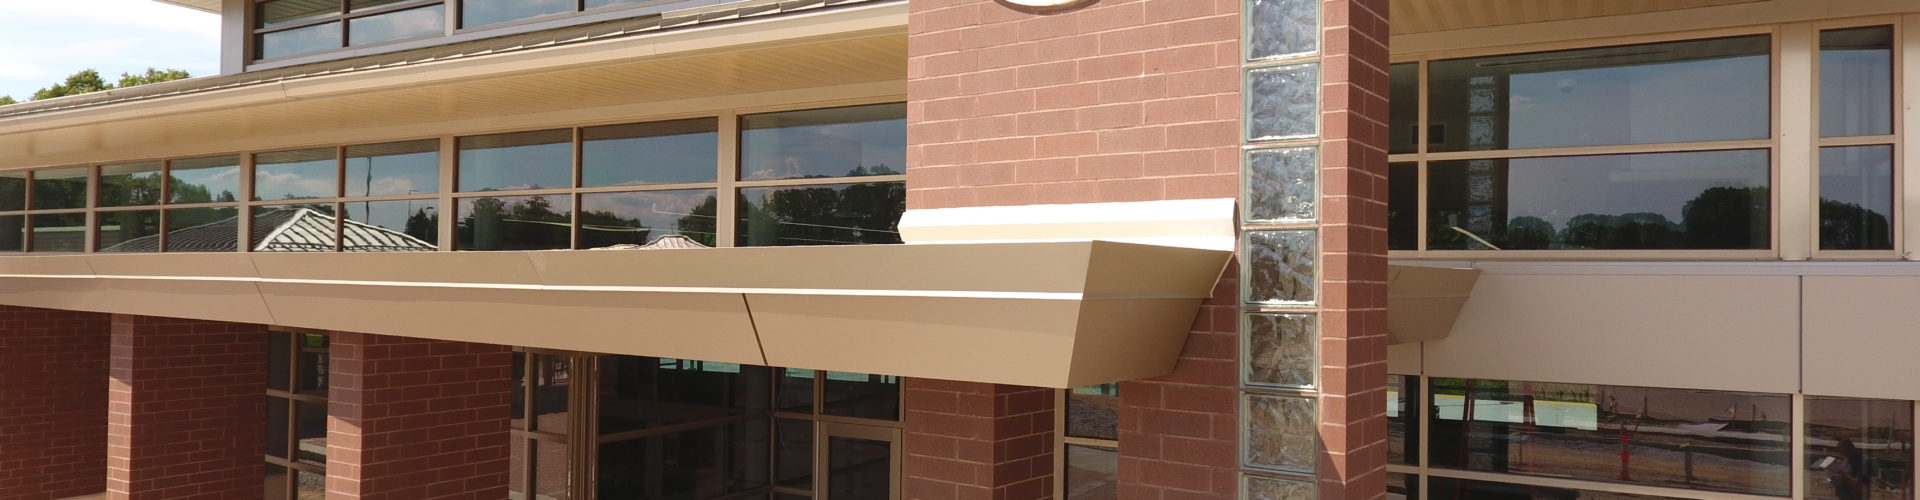 Metal Roof Edge Systems Fascia Amp Coping Products Dmi